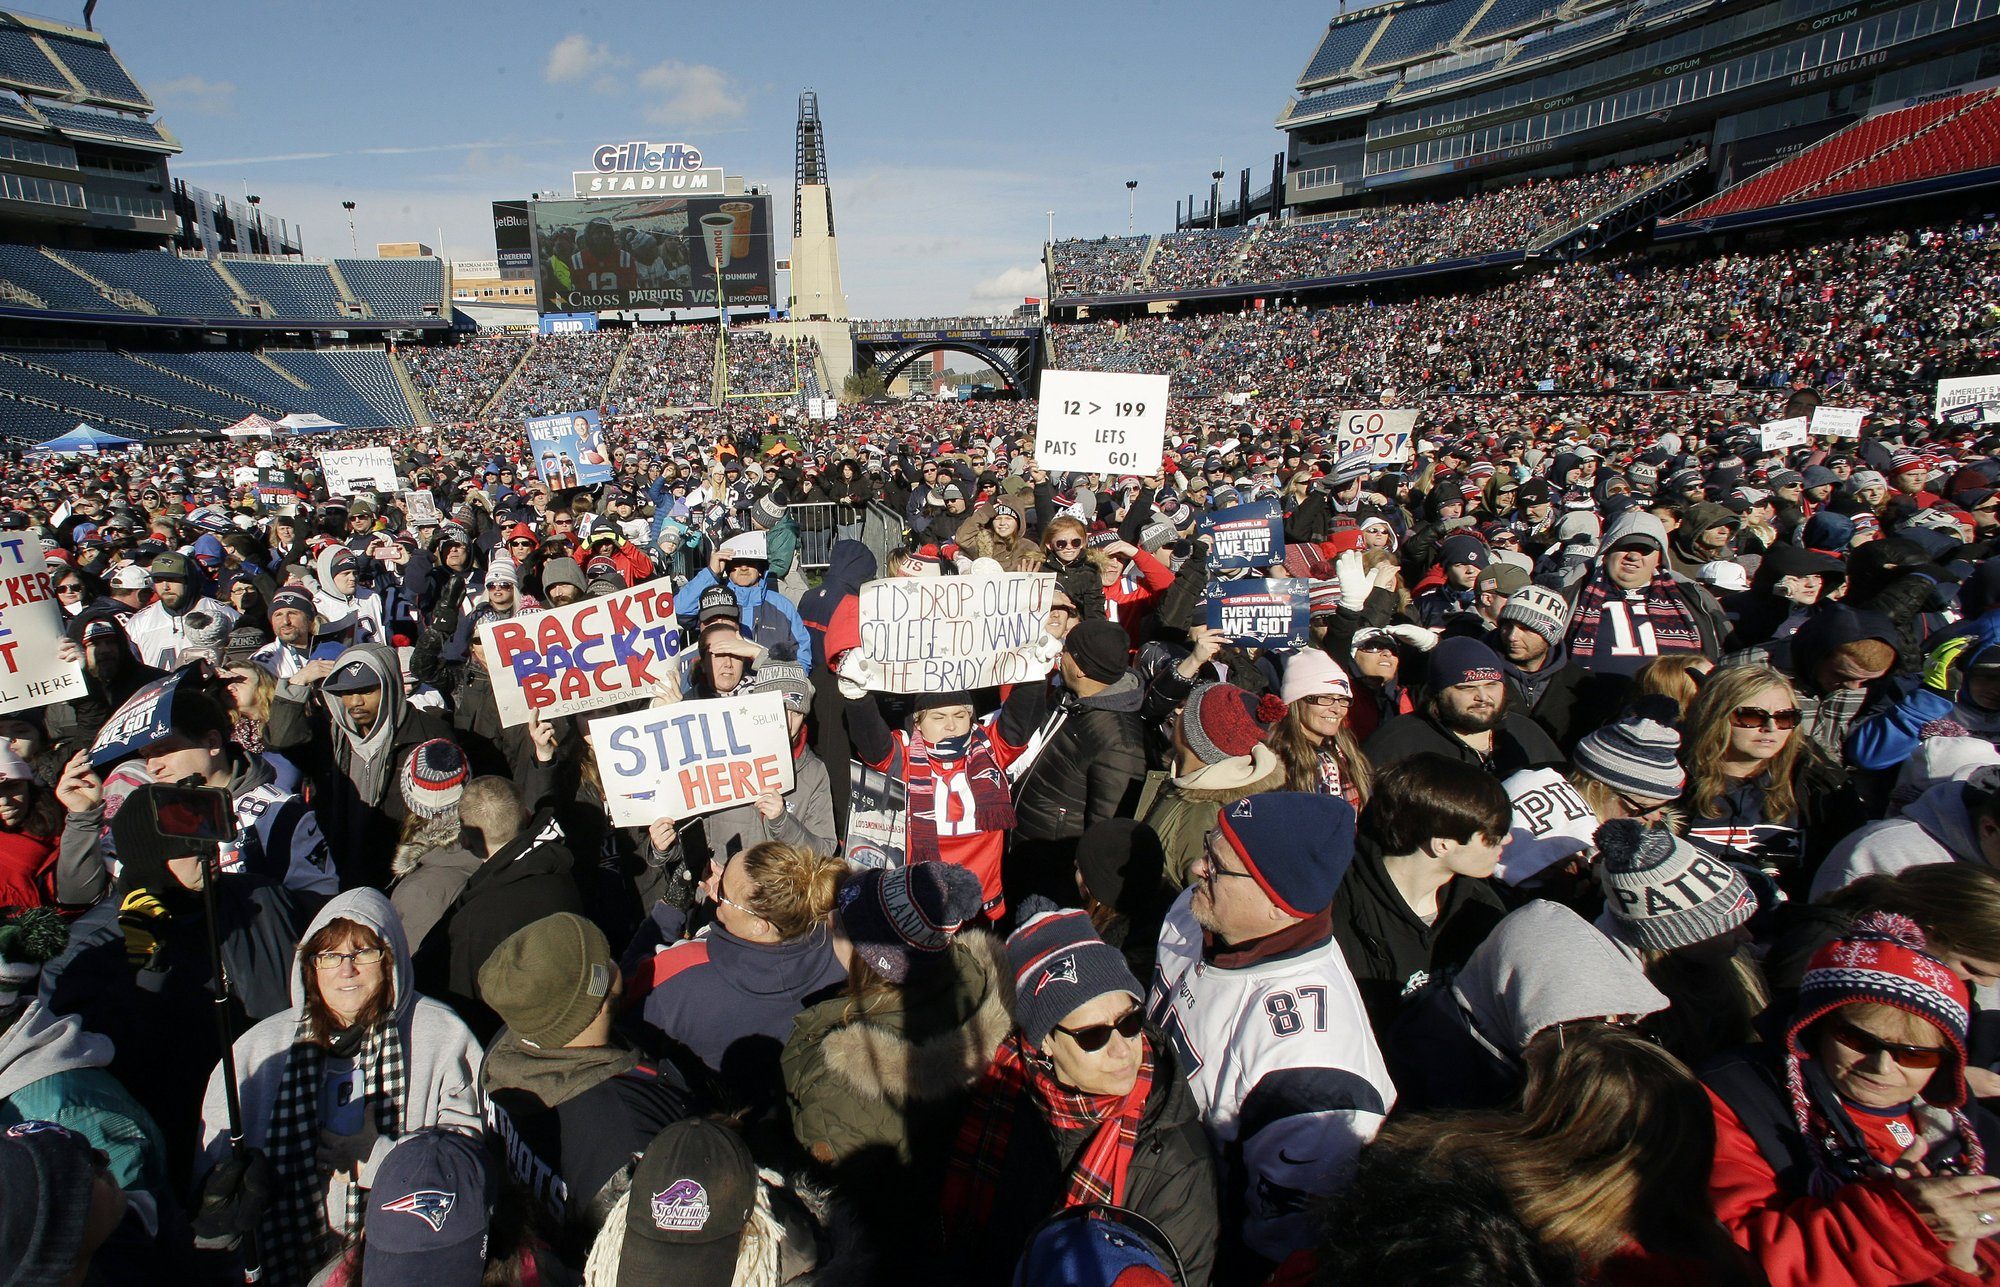 Pats rally_1548627523626.jpeg.jpg